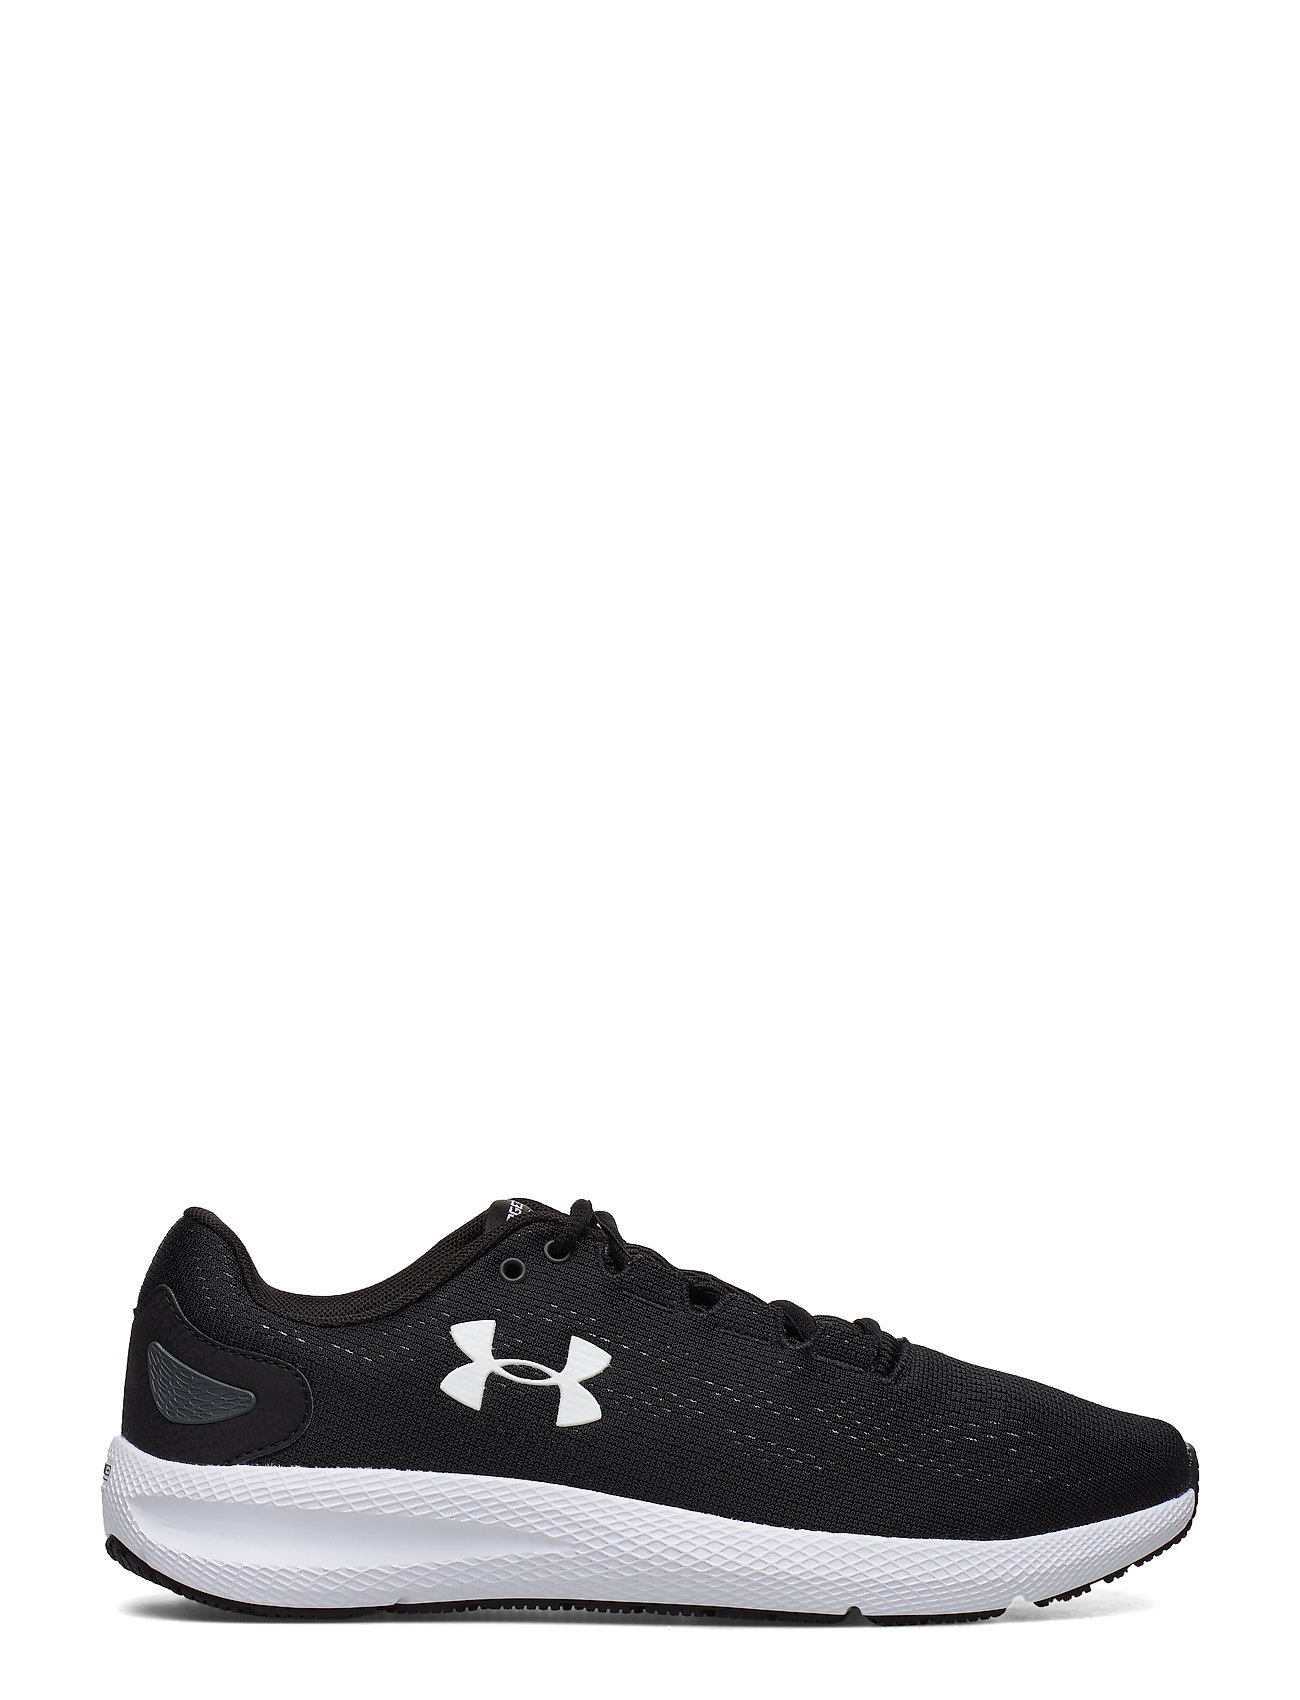 Ua Charged Pursuit 2 Shoes Sport Shoes Running Shoes Sort Under Armour